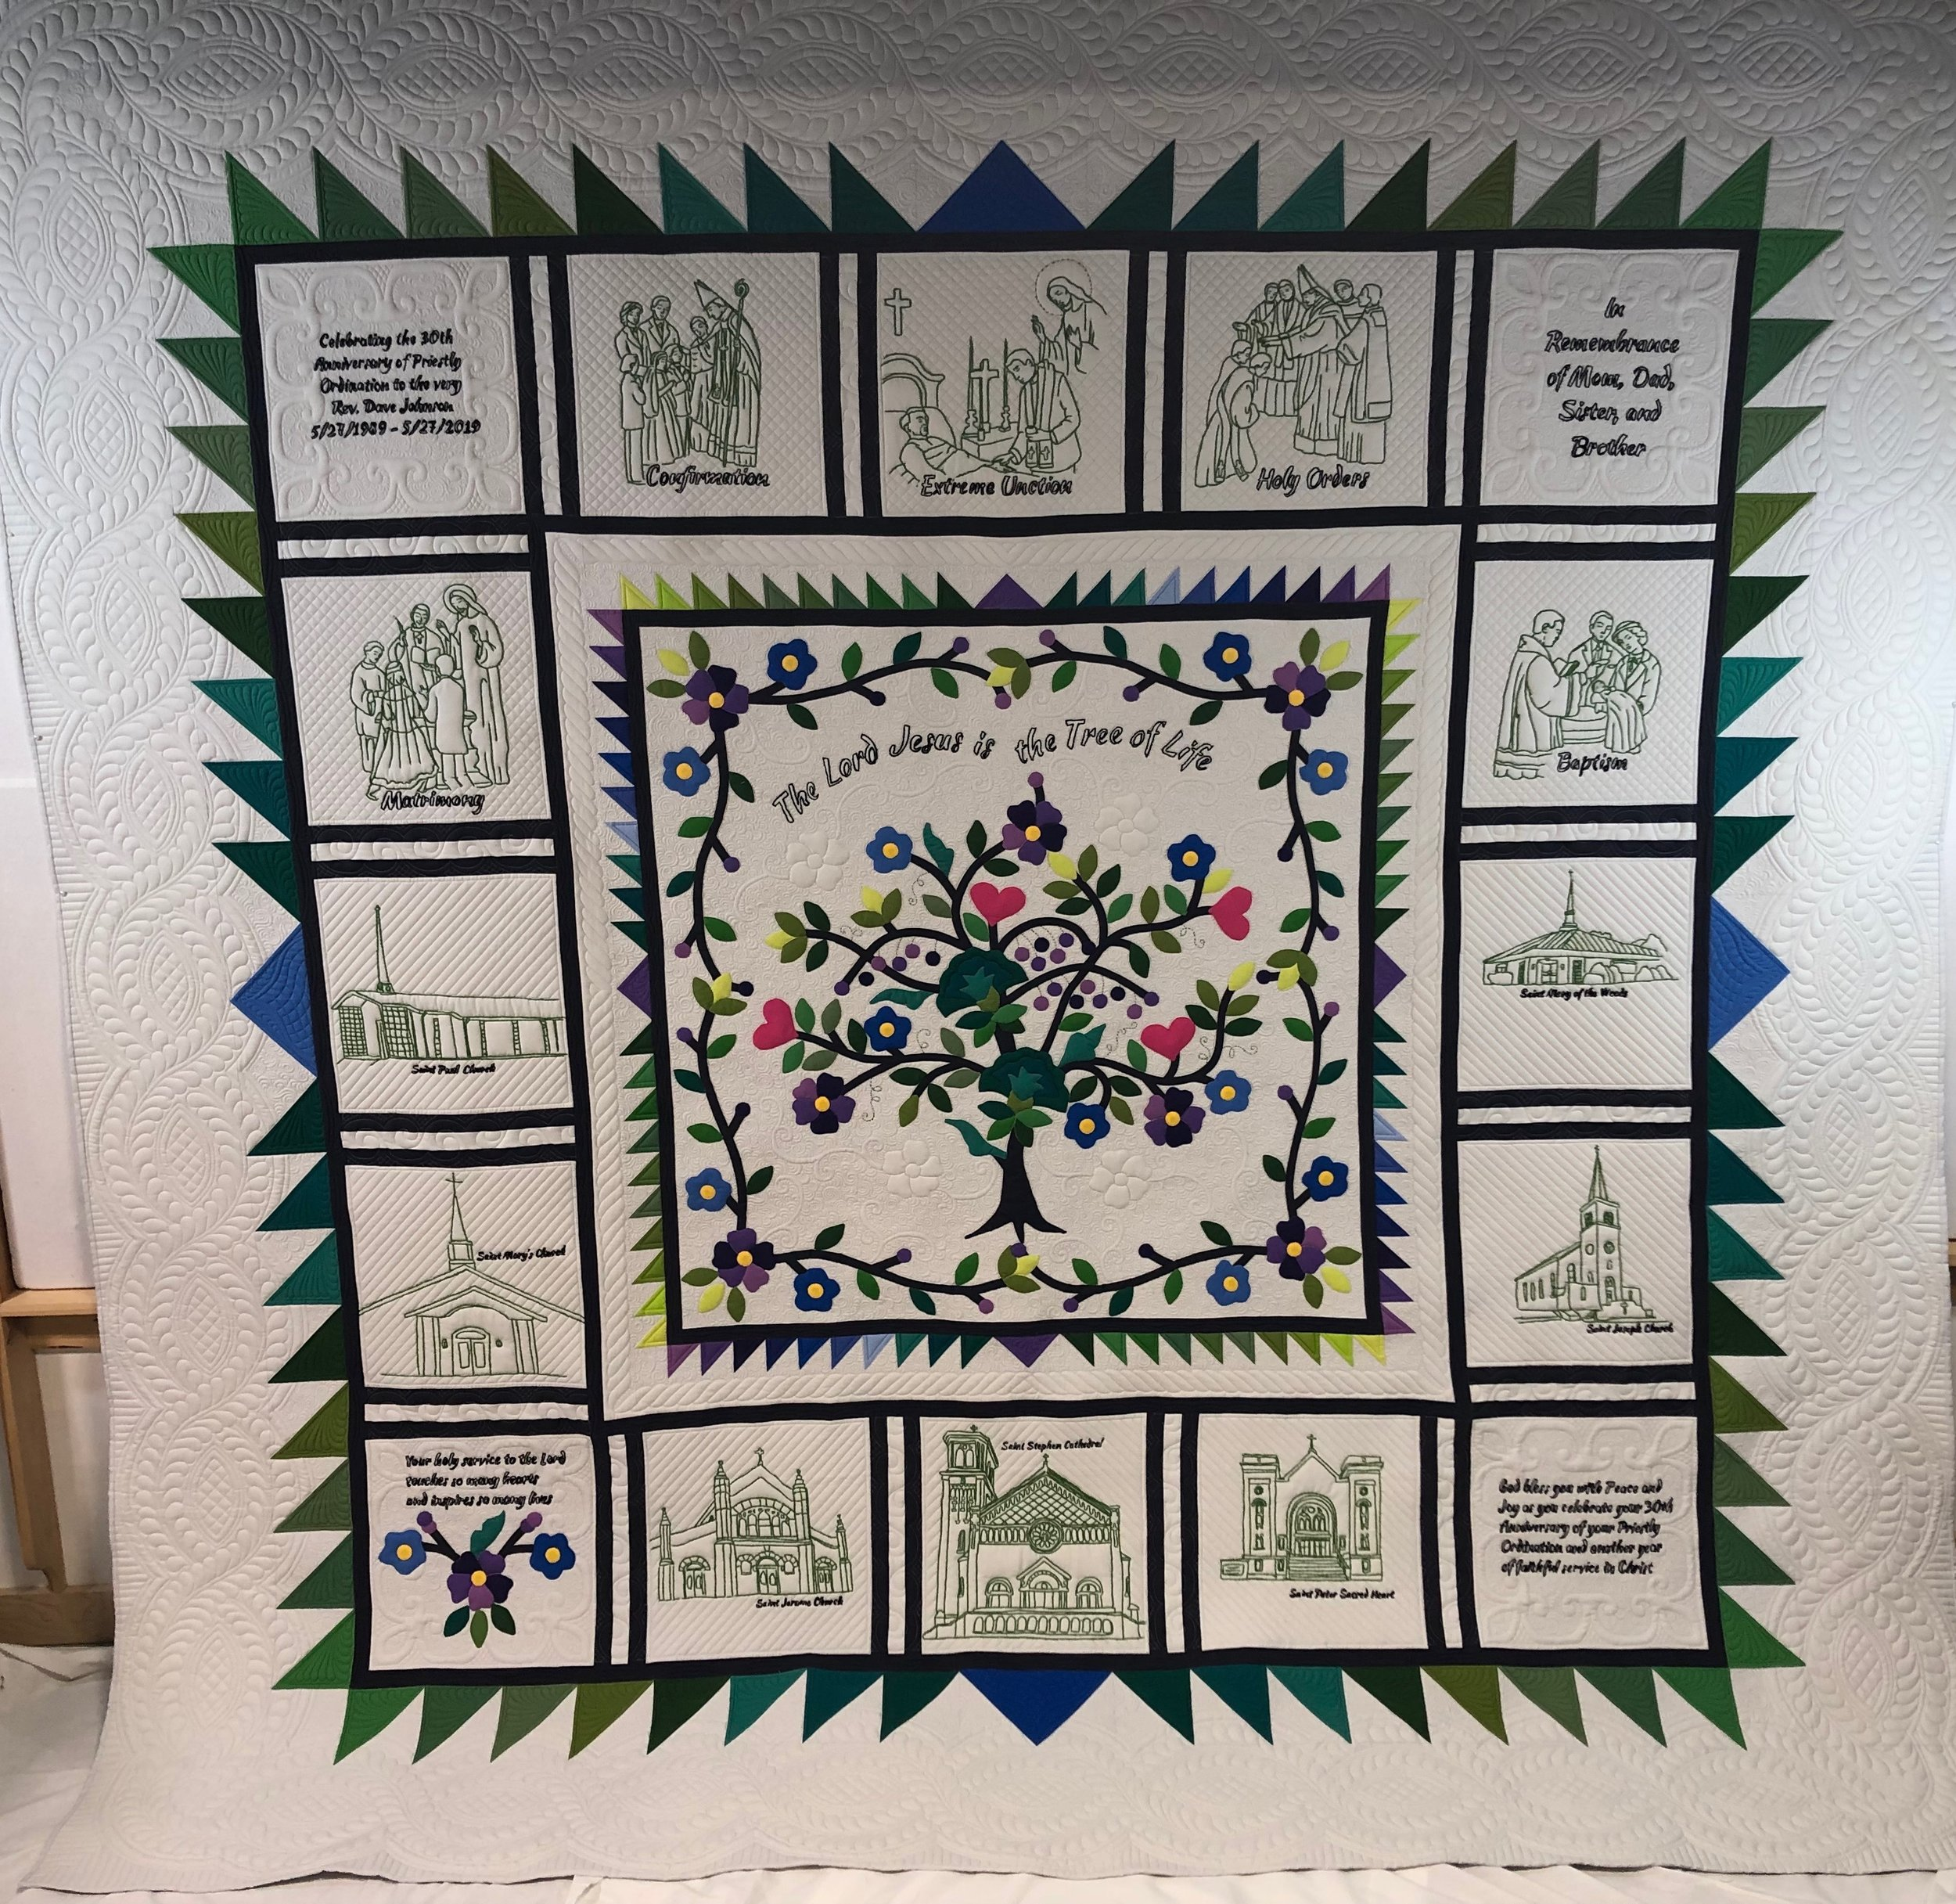 Tree of Life Quilt for Rev. Dave Johnson for Bobbie Edds by Karen McTavish and the Quilters at McTavish Quilting Studio (112 x 112) Duluth Minnesota